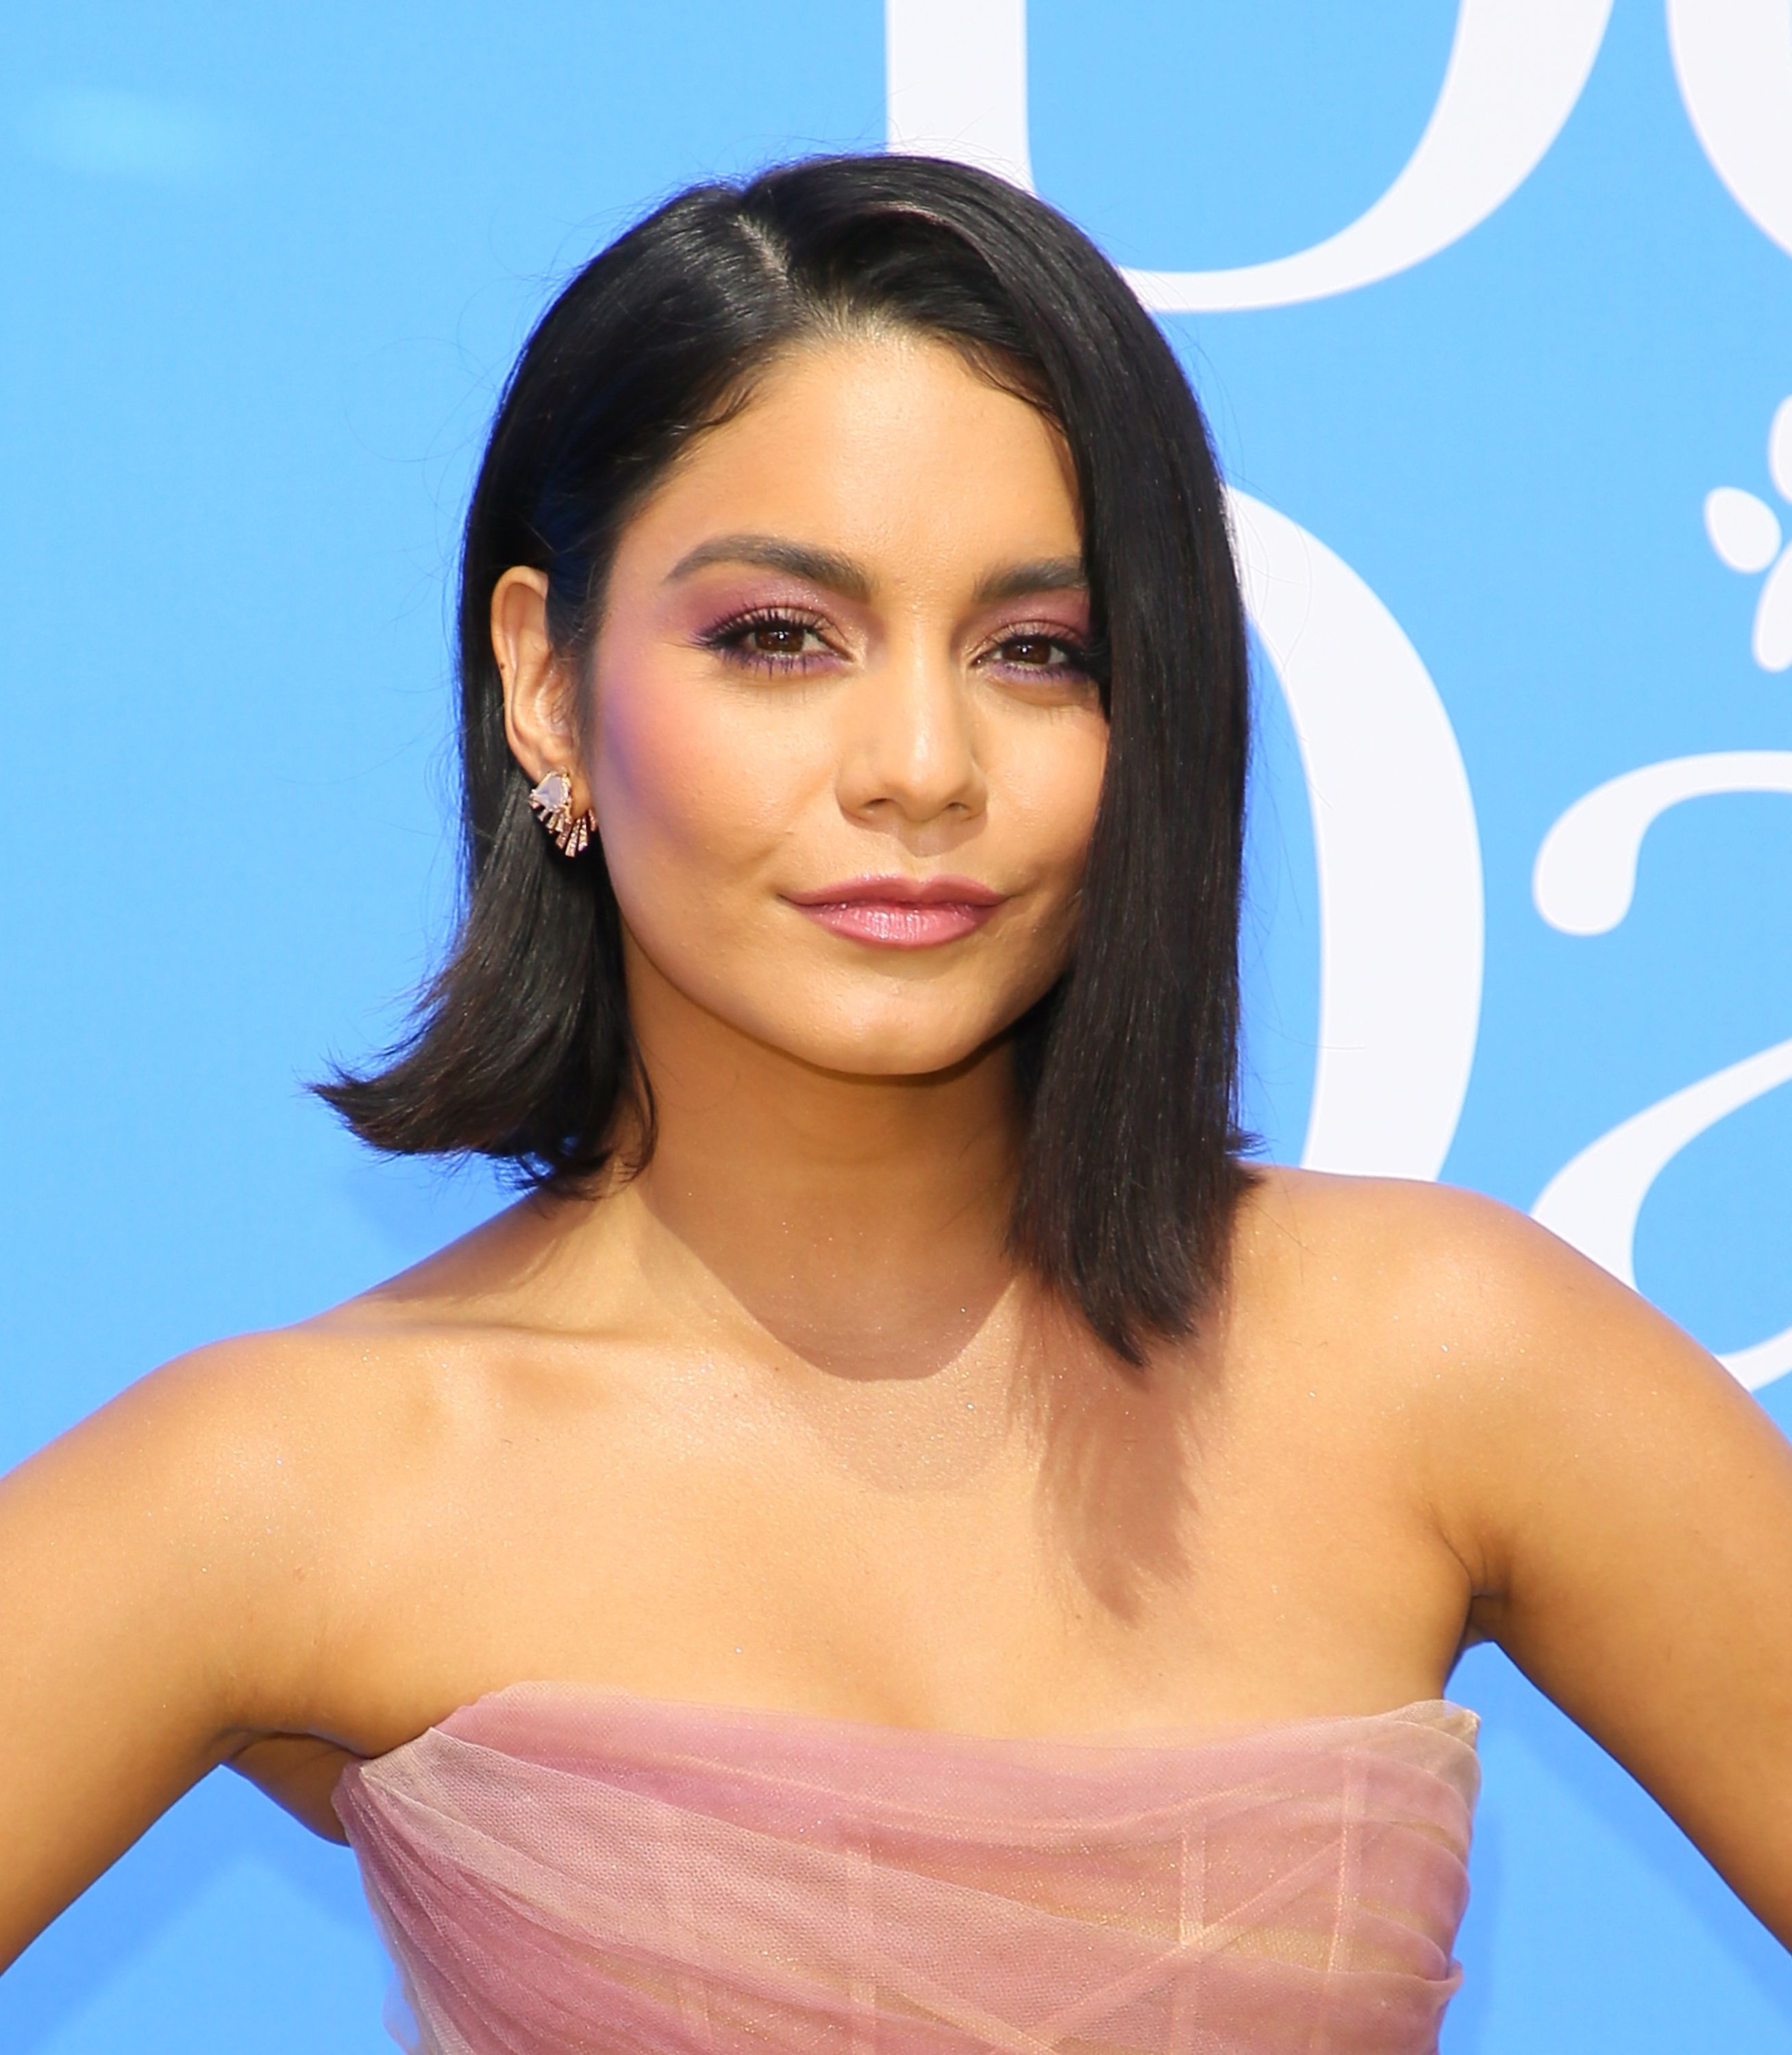 Vanessa Hudgens Just Posted A Pic Of Her Complete Travel Skincare Routine To Instagram